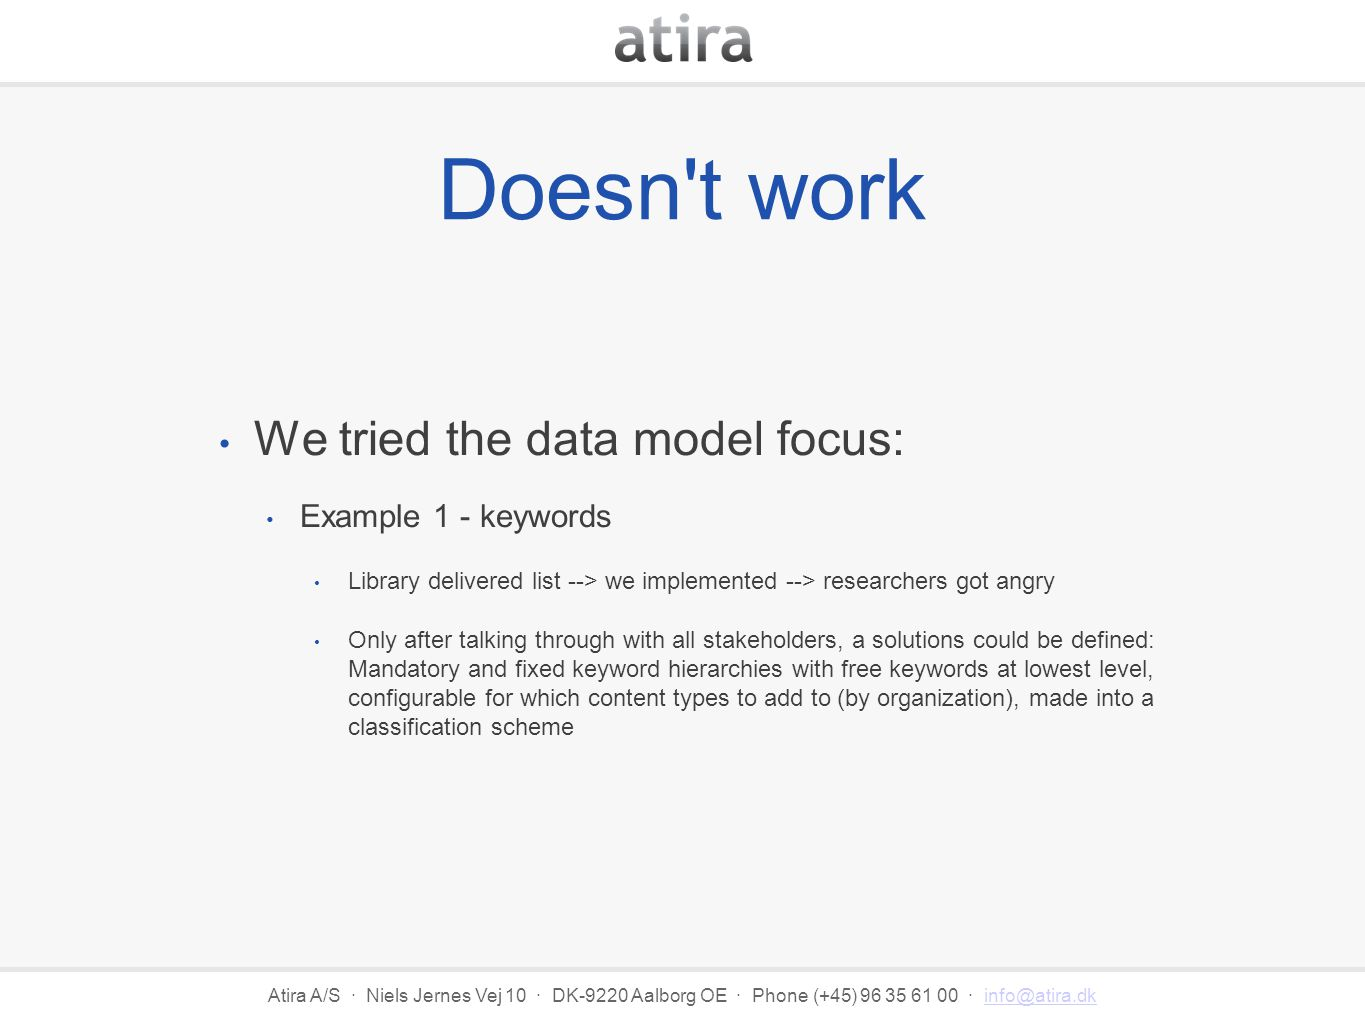 Atira A/S · Niels Jernes Vej 10 · DK-9220 Aalborg OE · Phone (+45) 96 35 61 00 · info@atira.dkinfo@atira.dk Doesn t work We tried the data model focus: Example 1 - keywords Library delivered list --> we implemented --> researchers got angry Only after talking through with all stakeholders, a solutions could be defined: Mandatory and fixed keyword hierarchies with free keywords at lowest level, configurable for which content types to add to (by organization), made into a classification scheme